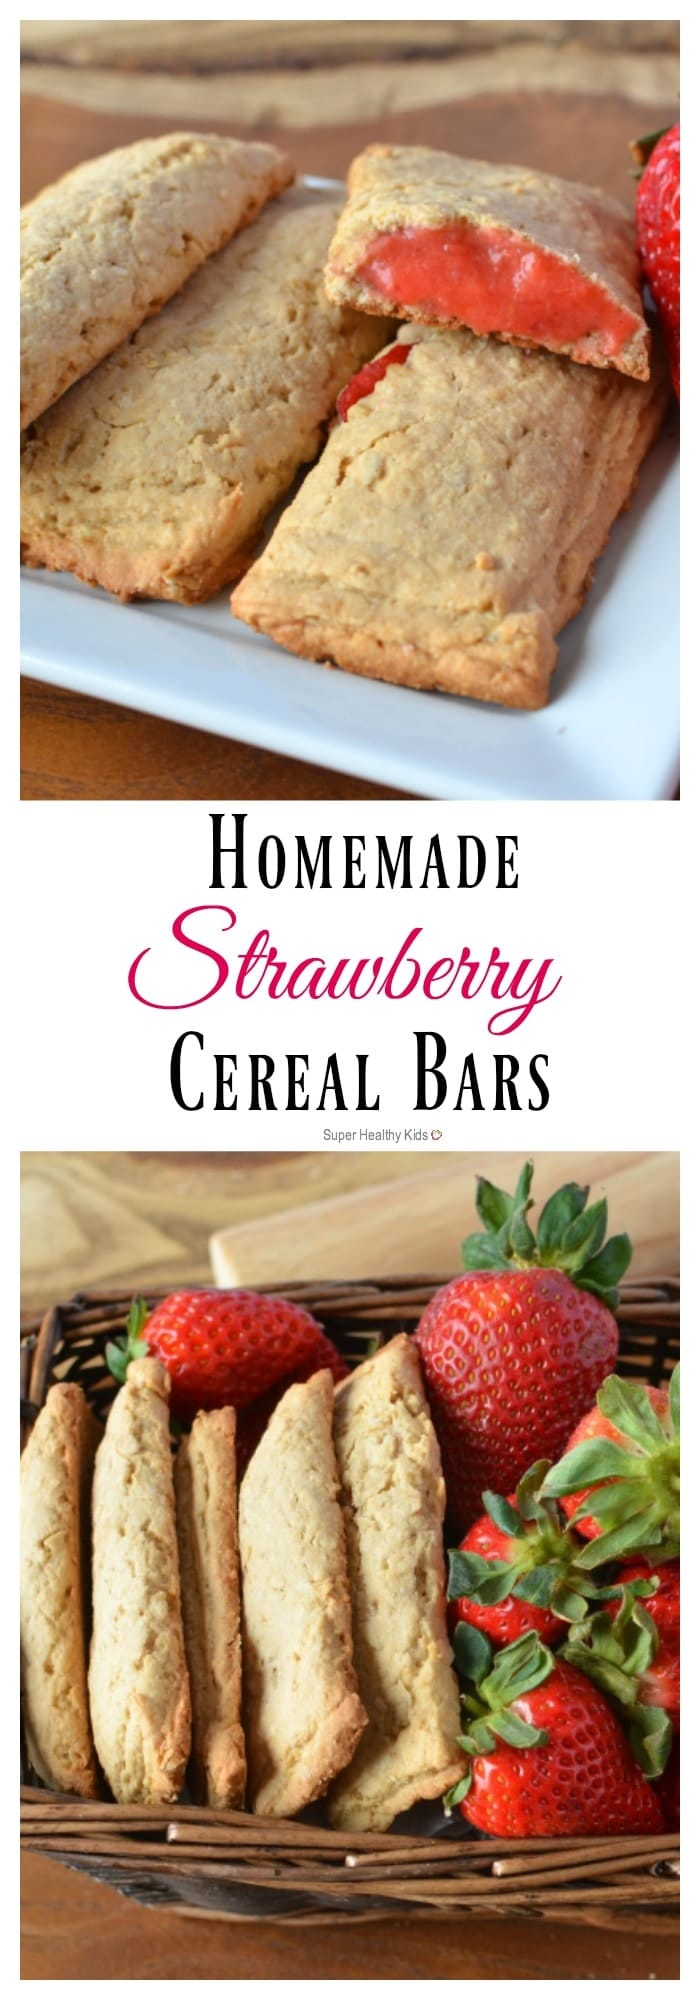 Homemade Strawberry Cereal Bars Recipe. Everyone loves our make at home version of cereal bars! https://www.superhealthykids.com/homemade-cereal-bars/